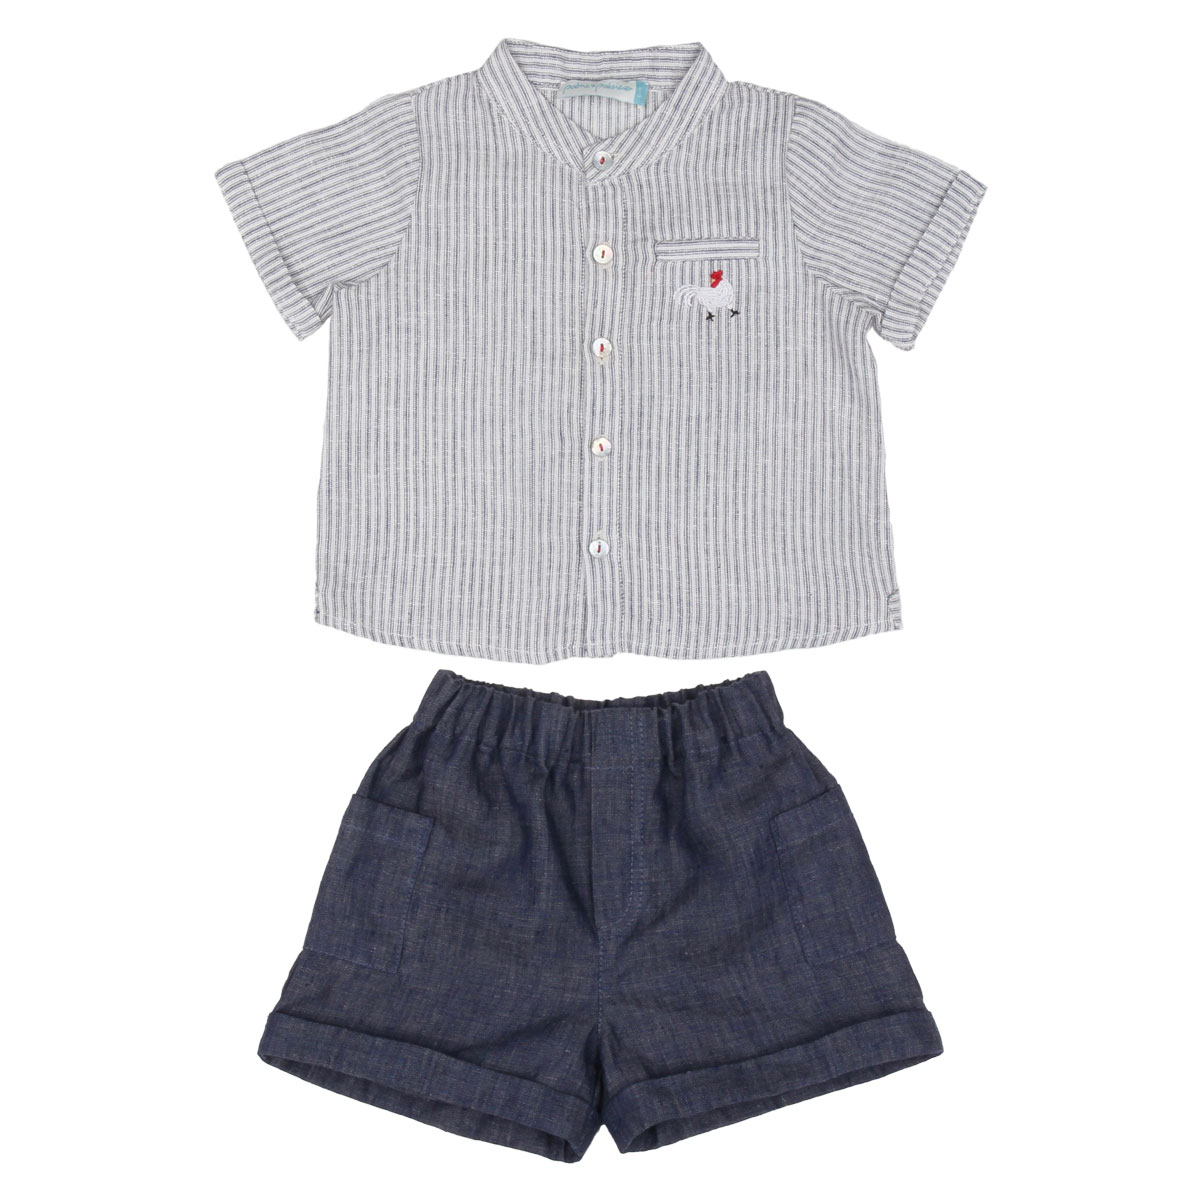 Poeme and Poesie Linen Striped Shirt in Blue Shorts